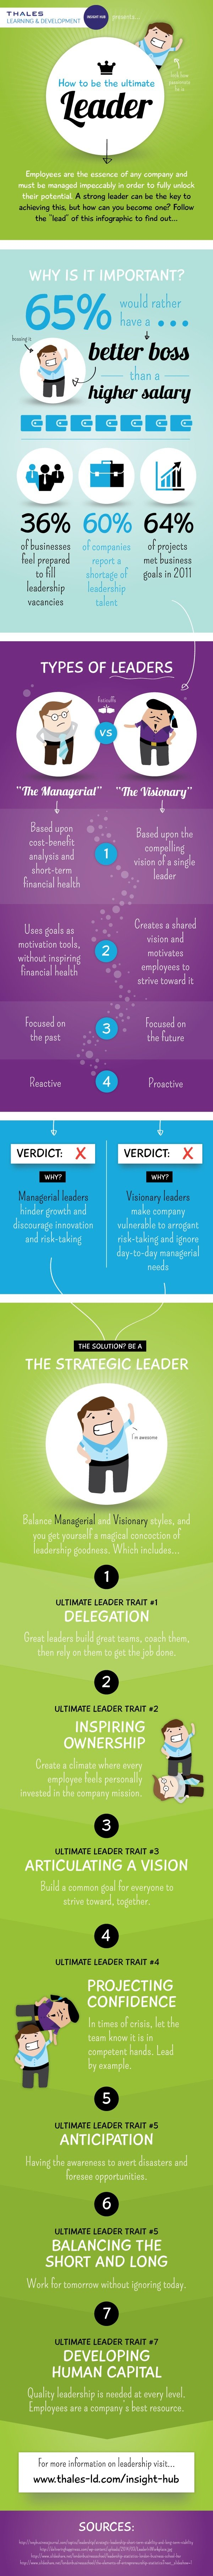 How To Be the Ultimate Leader #Infographic